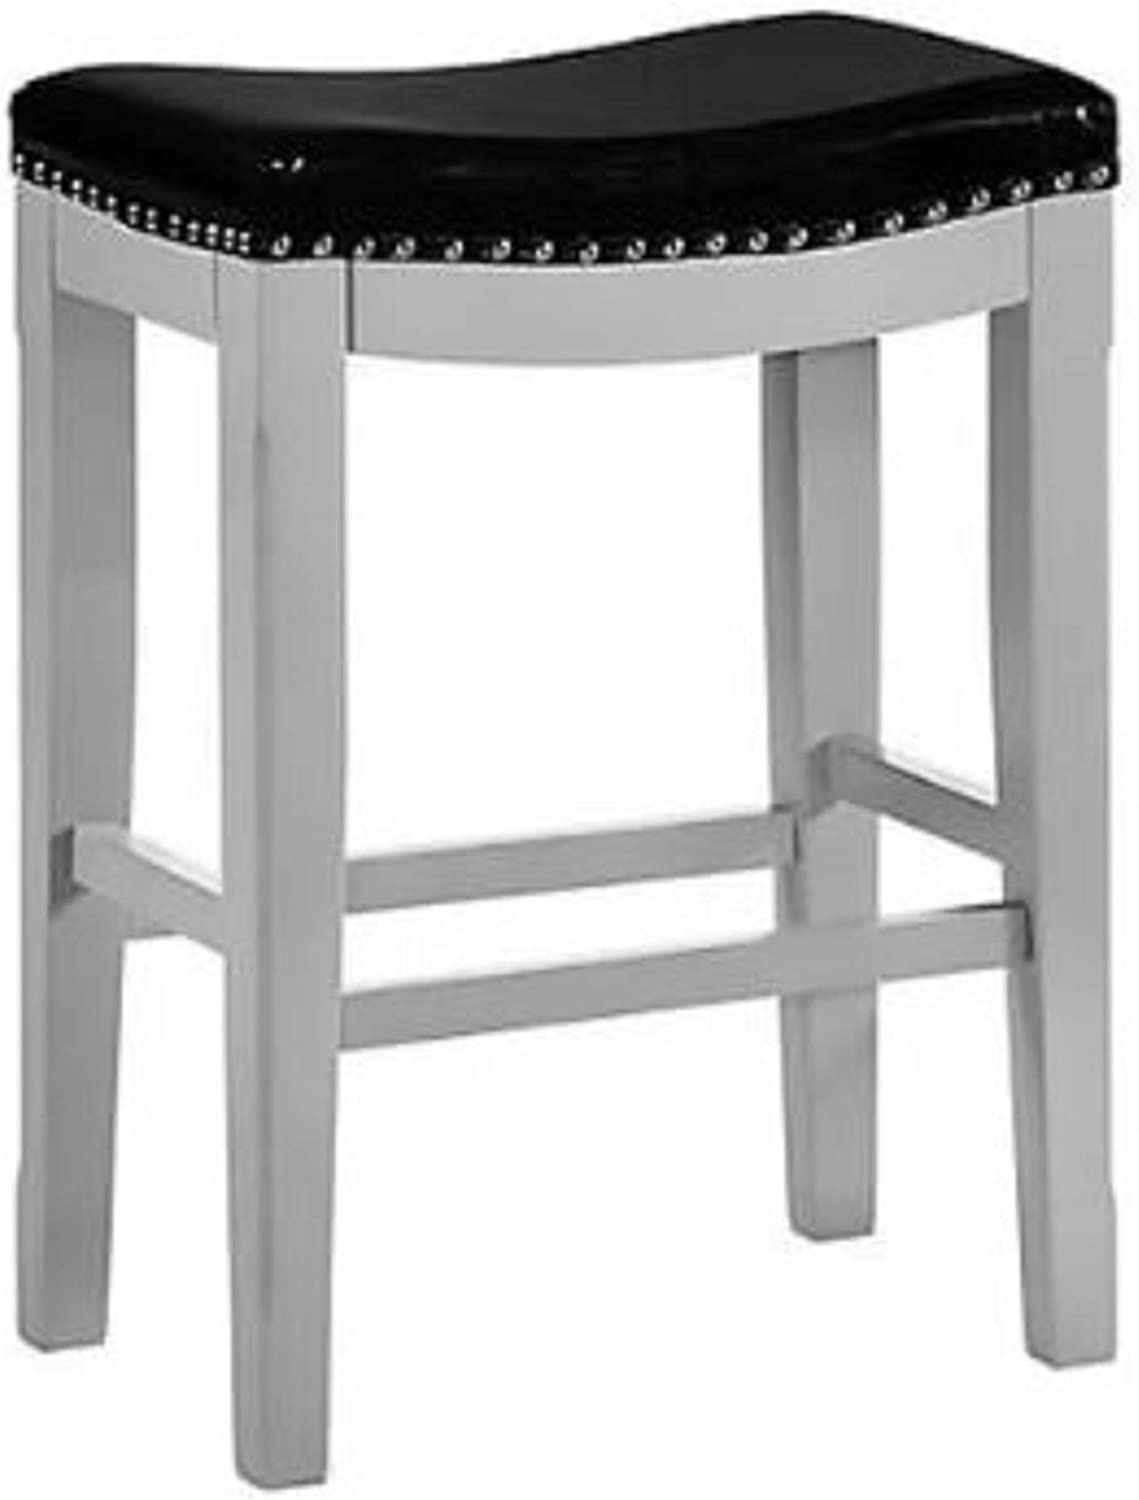 Backless Bar Stool. Classic Saddle Design Atticus 24  Backless Bar Stool Rich Faux Leather Upholstery with Nailhead Trim Winter Grey